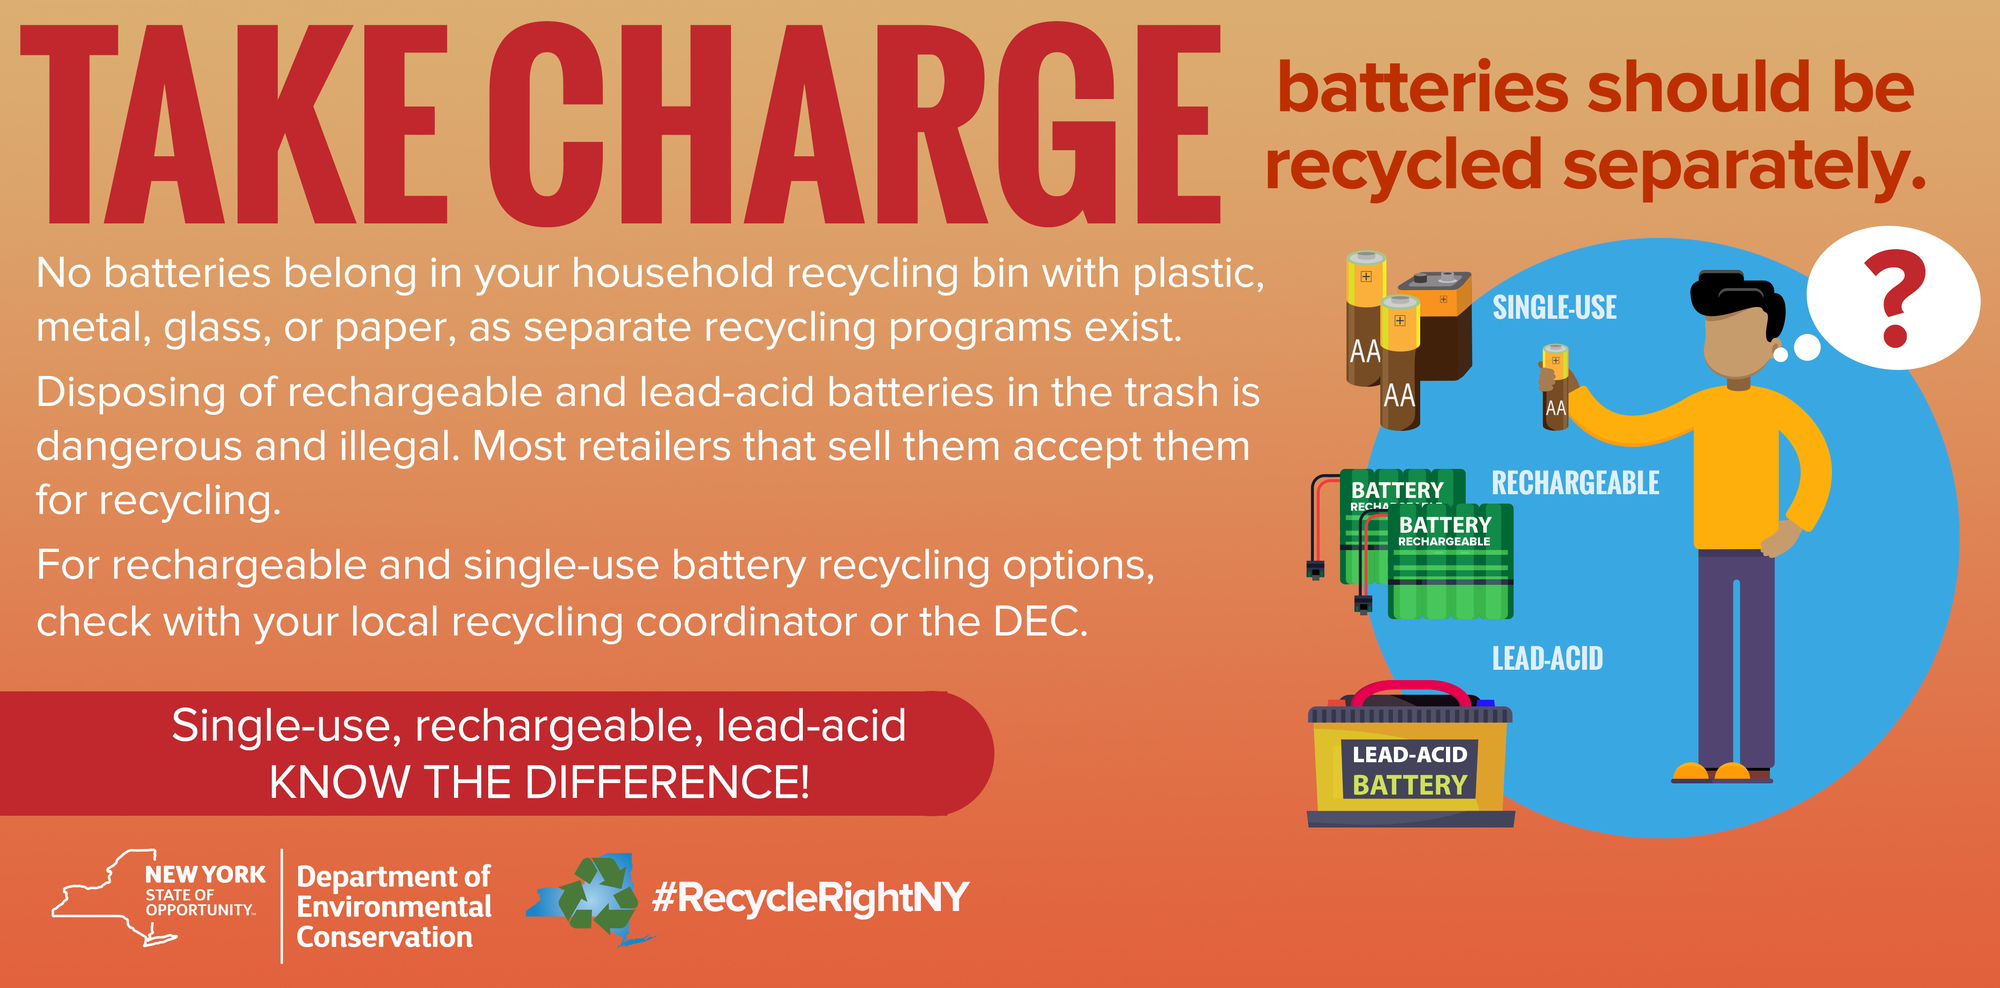 graphic giving directions on how to properly recycle or dispose of different types of batteries